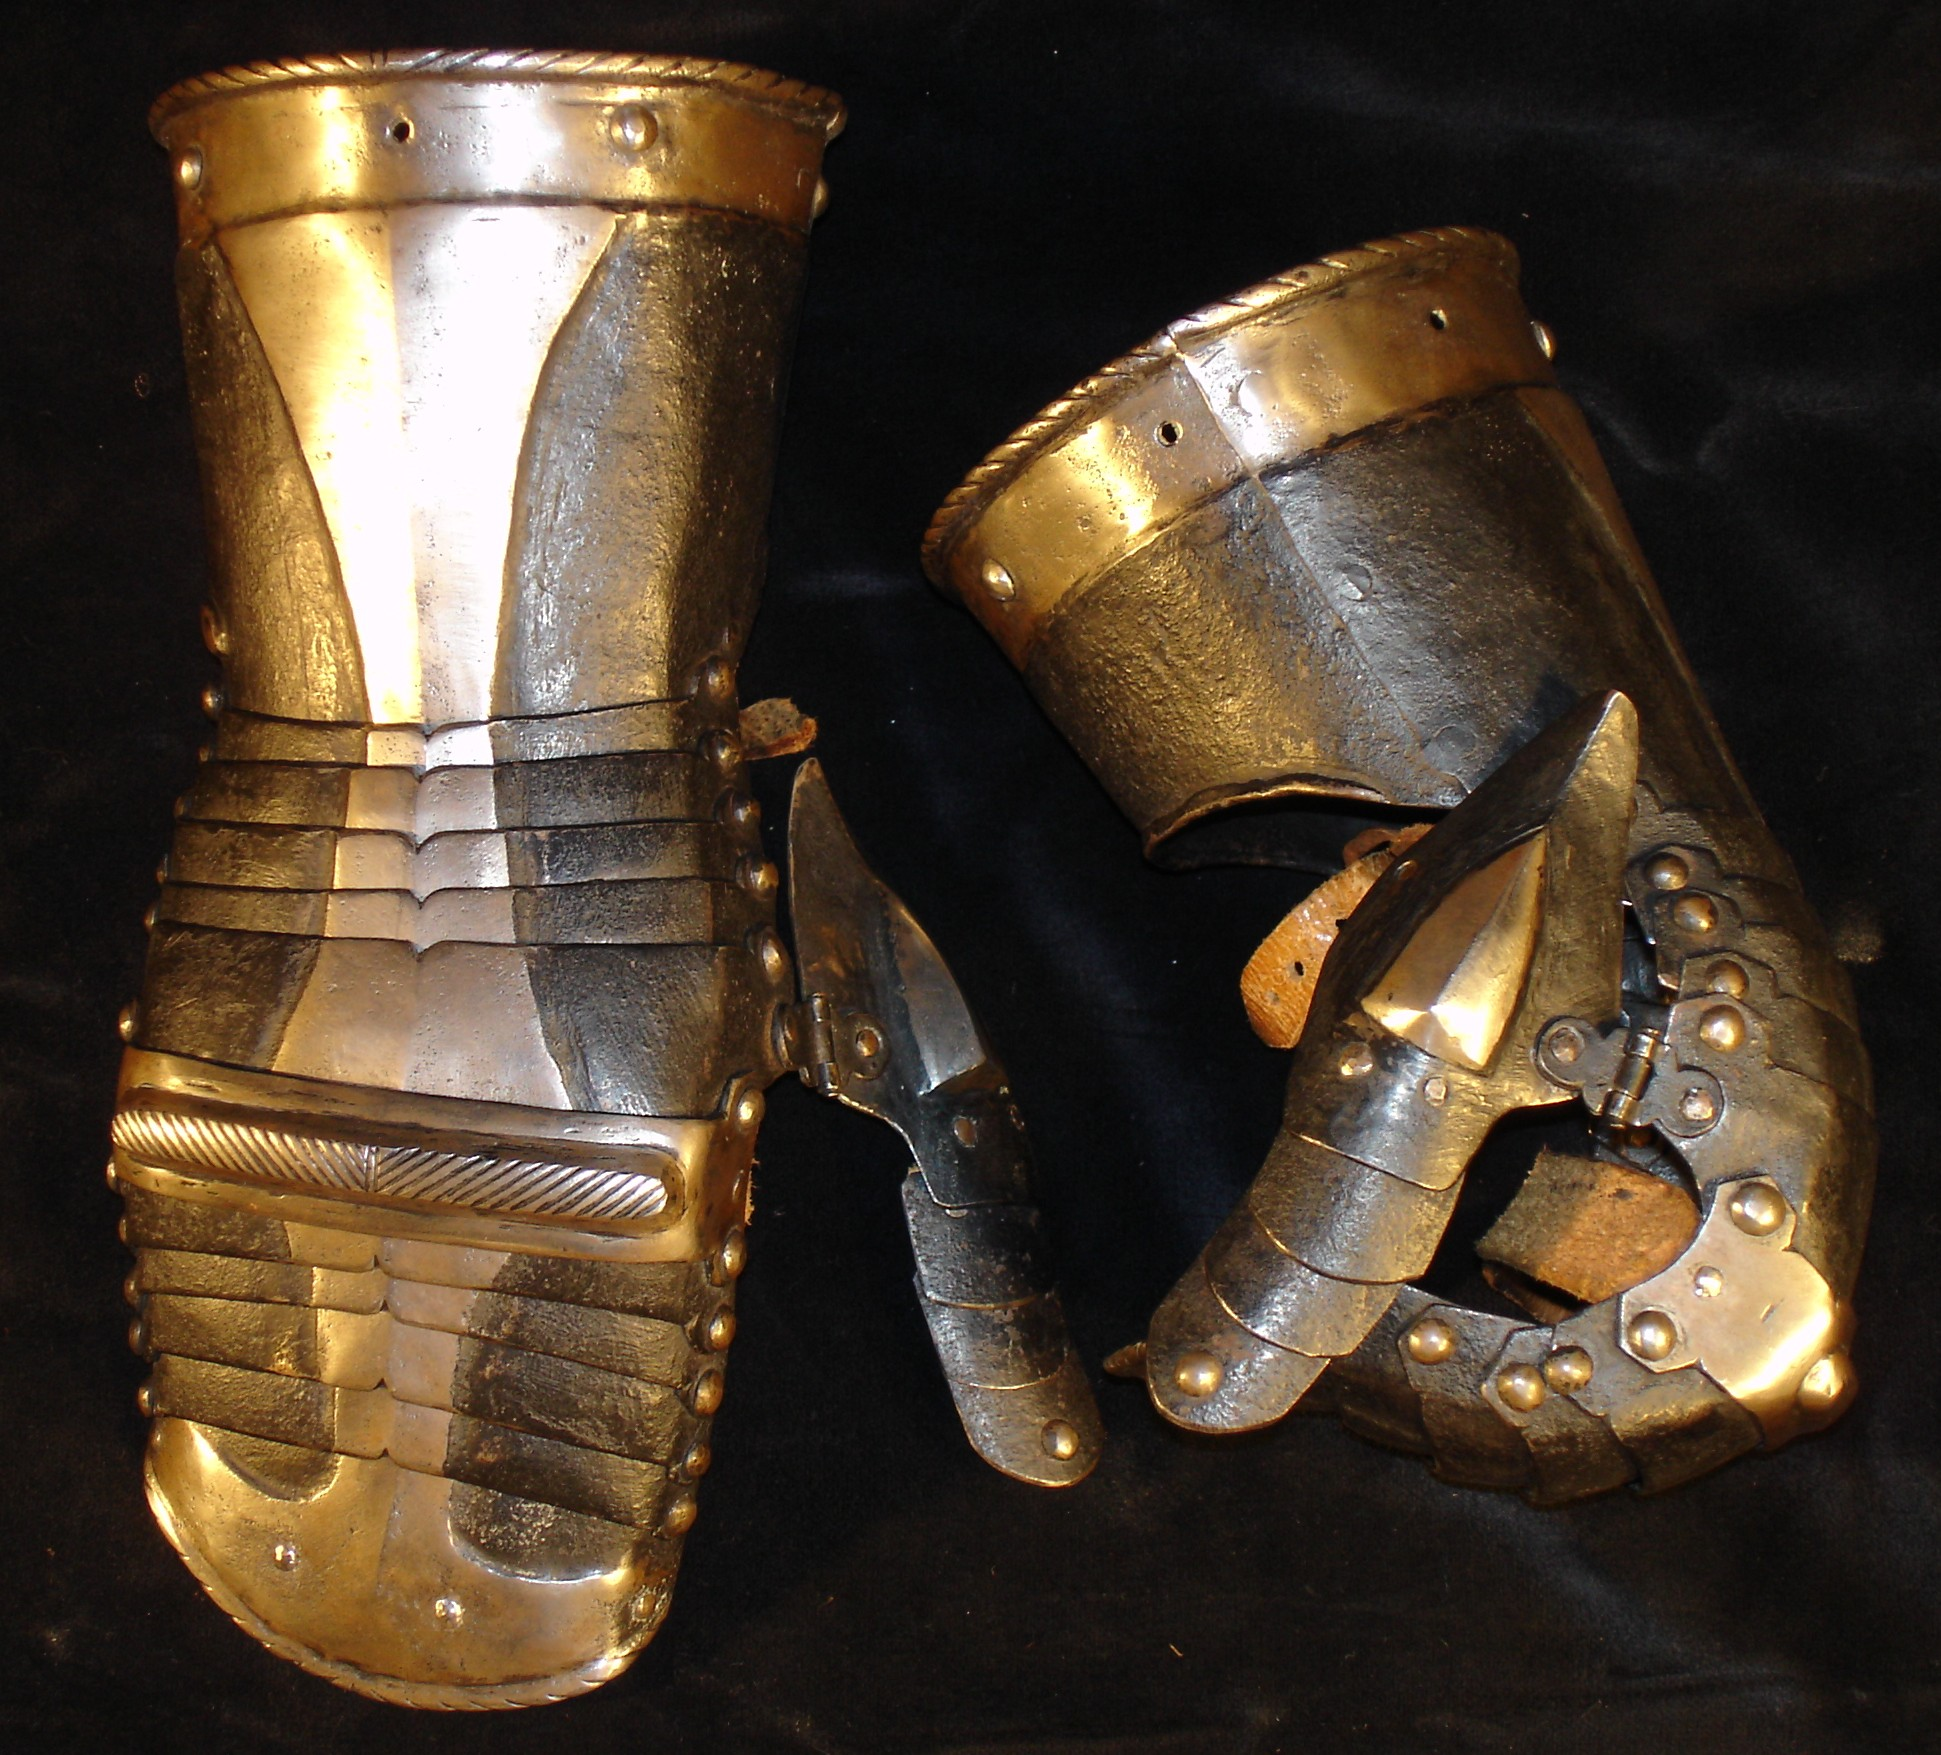 B&amp;W gauntlets on Wade Allens site